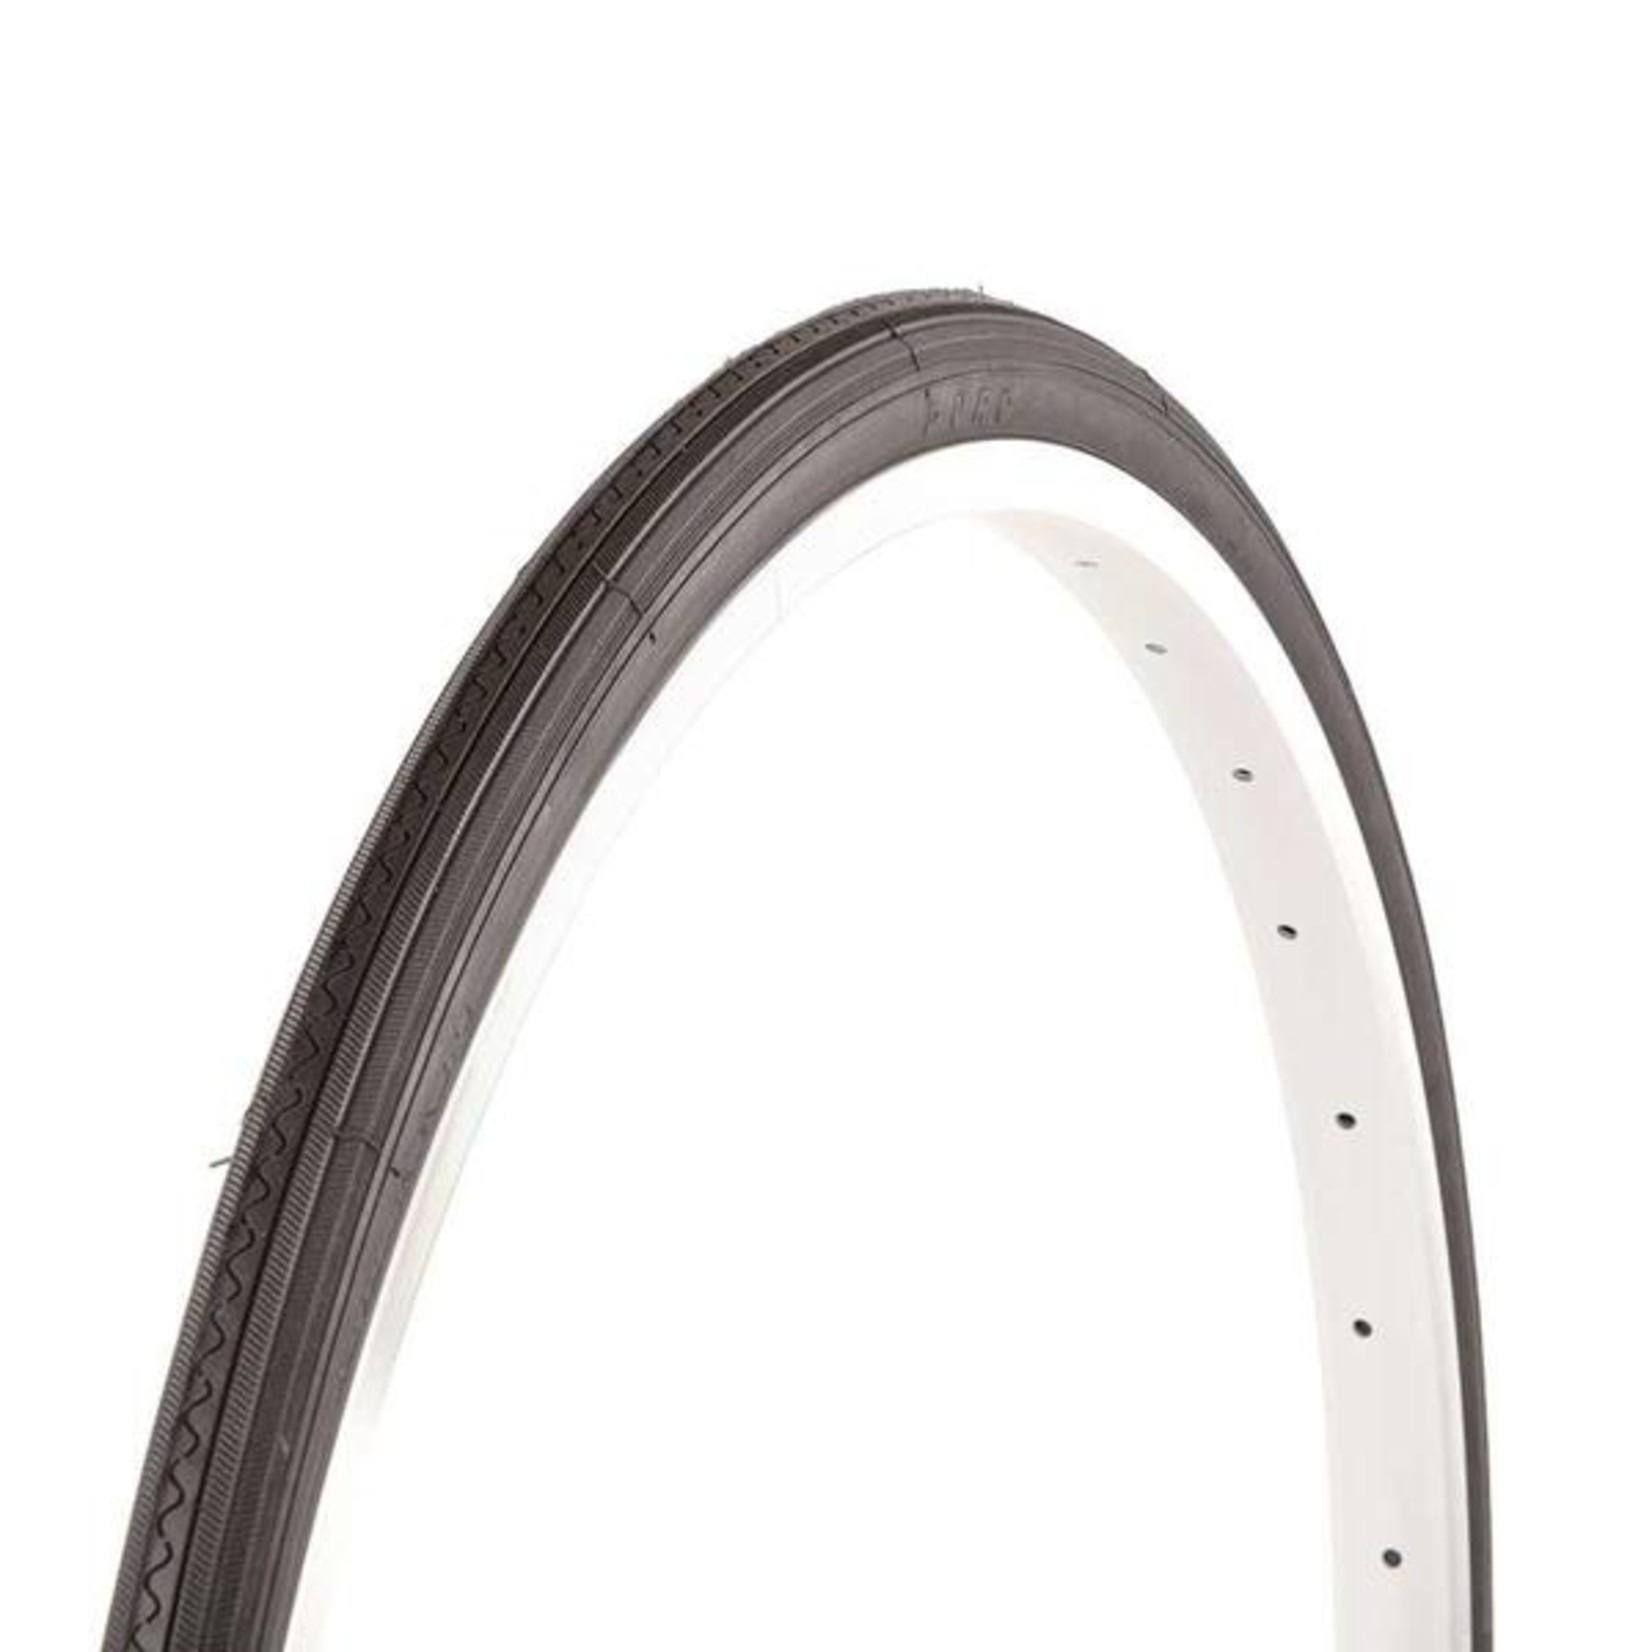 "Evo Evo Dash 27x1-1/4"" Wire Bead Road Tire"